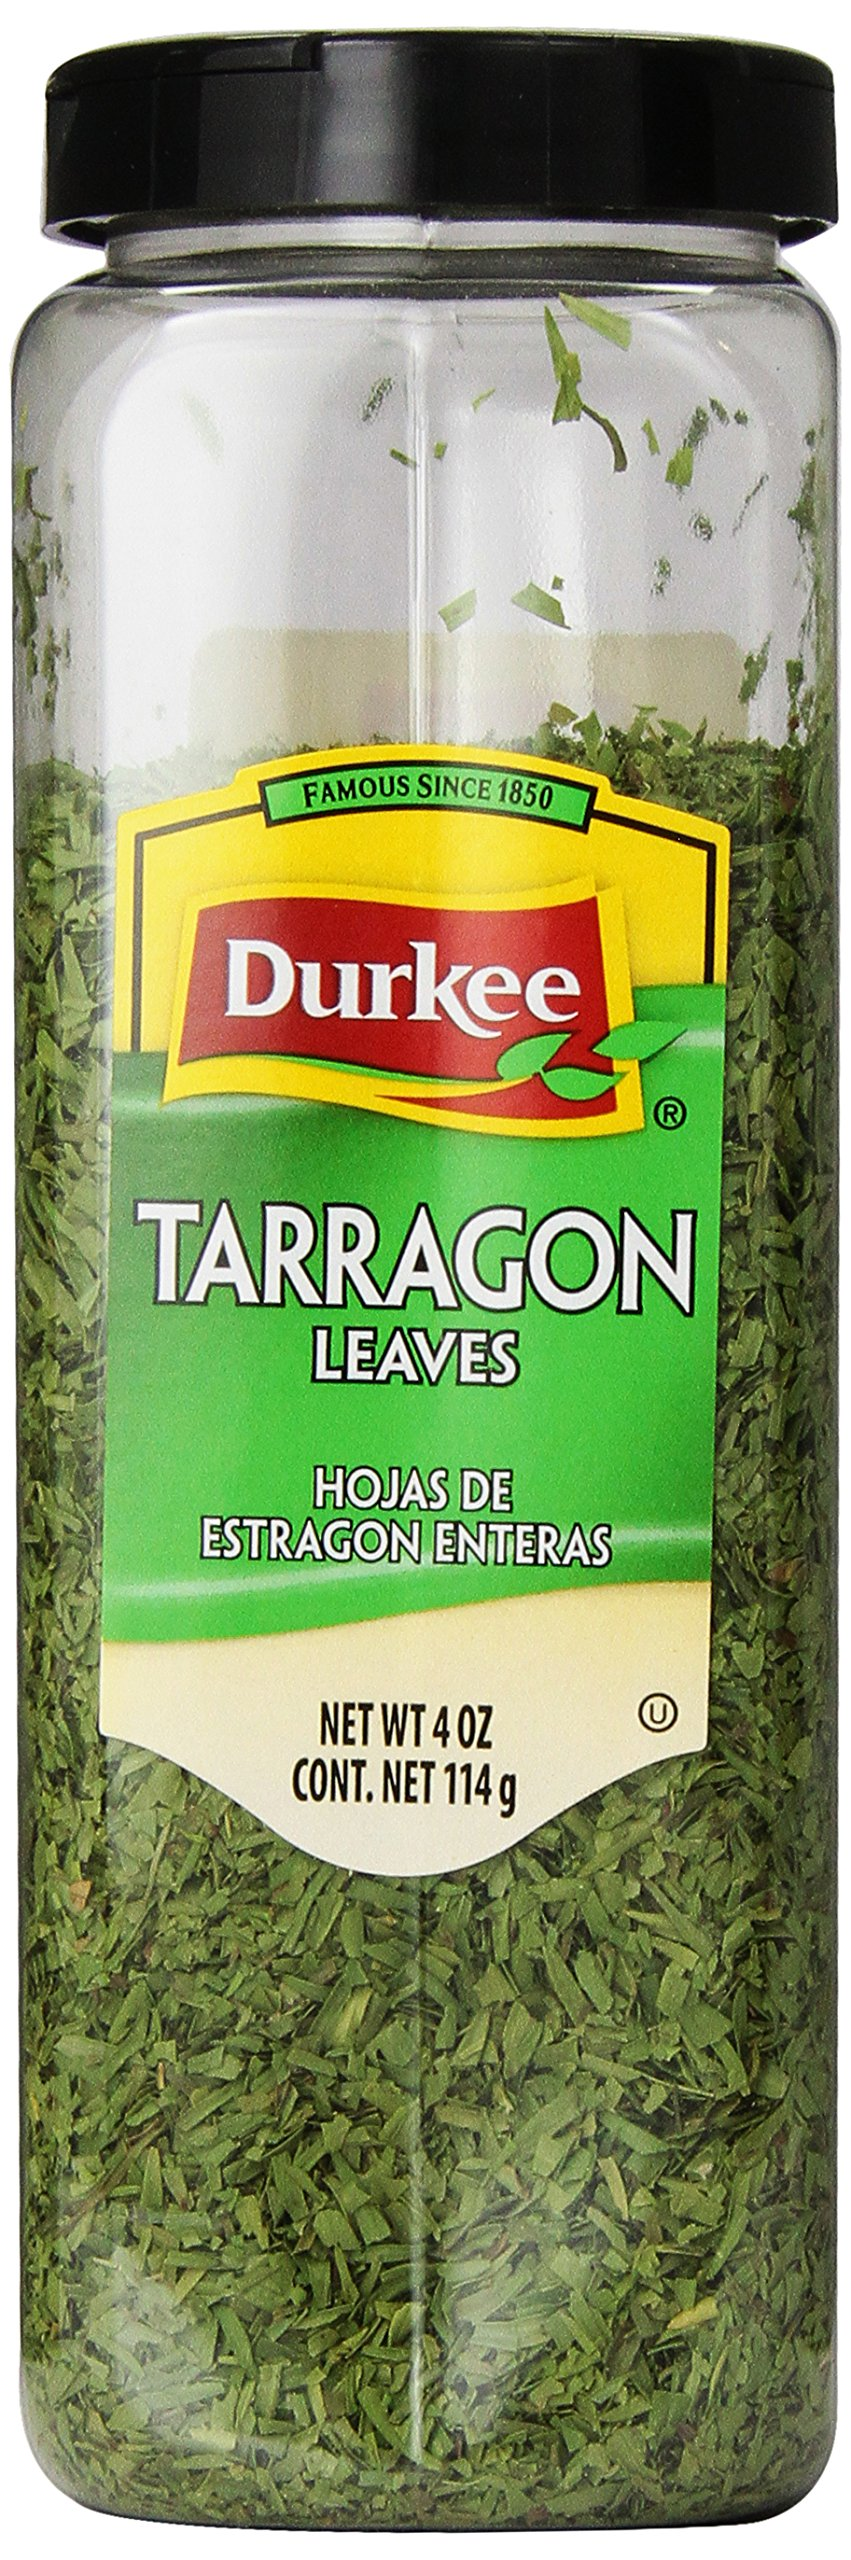 Durkee Tarragon Leaves Whole, 4-Ounce Containers (Pack of 2)